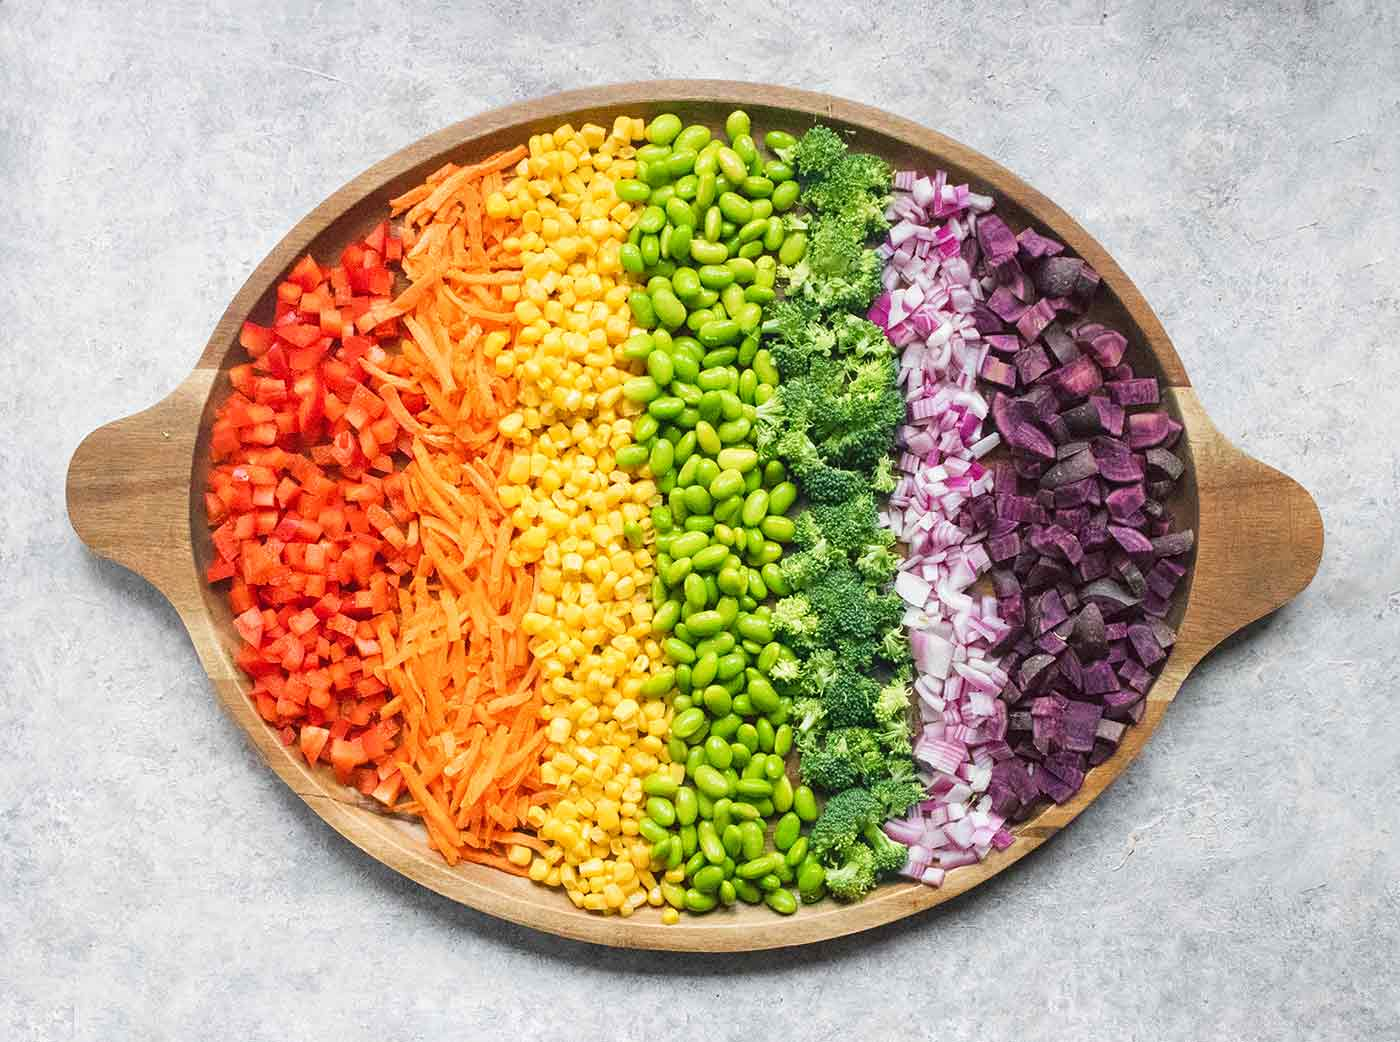 A rainbow of vegetables on a wooden platter